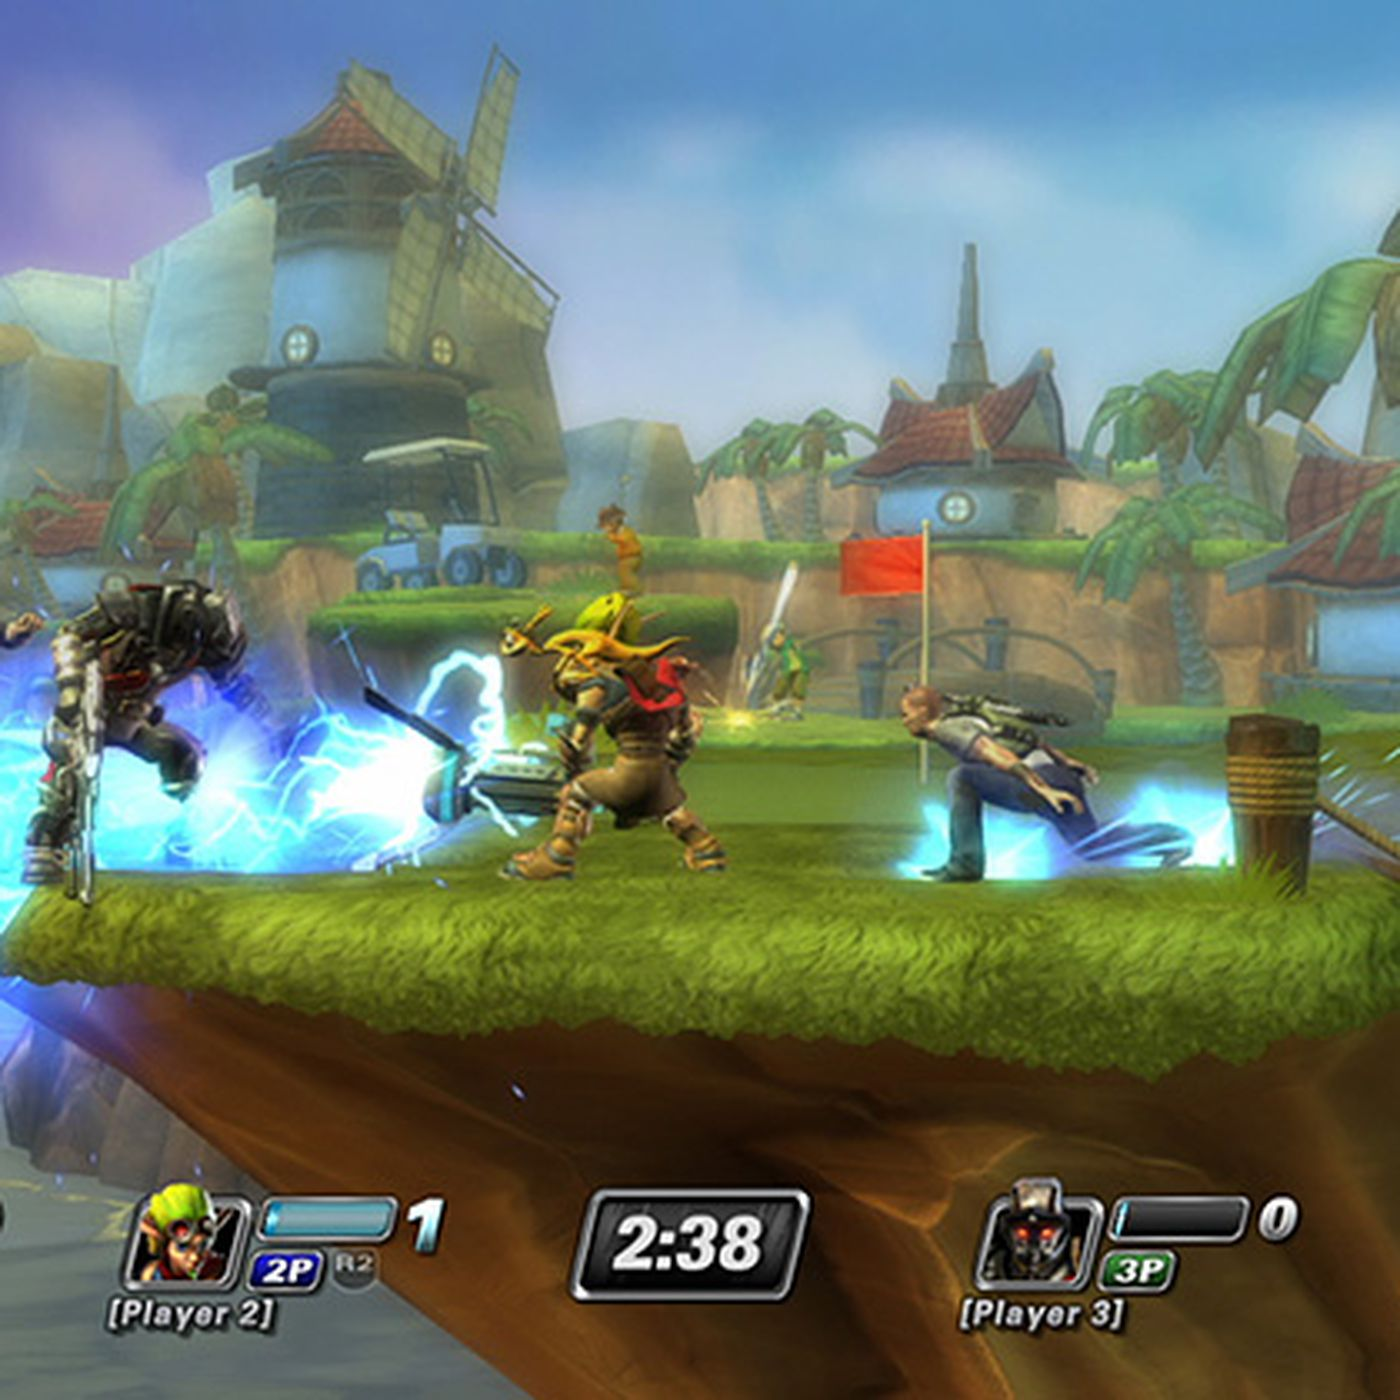 Image result for All Star Battle Royale Game For PS Vita